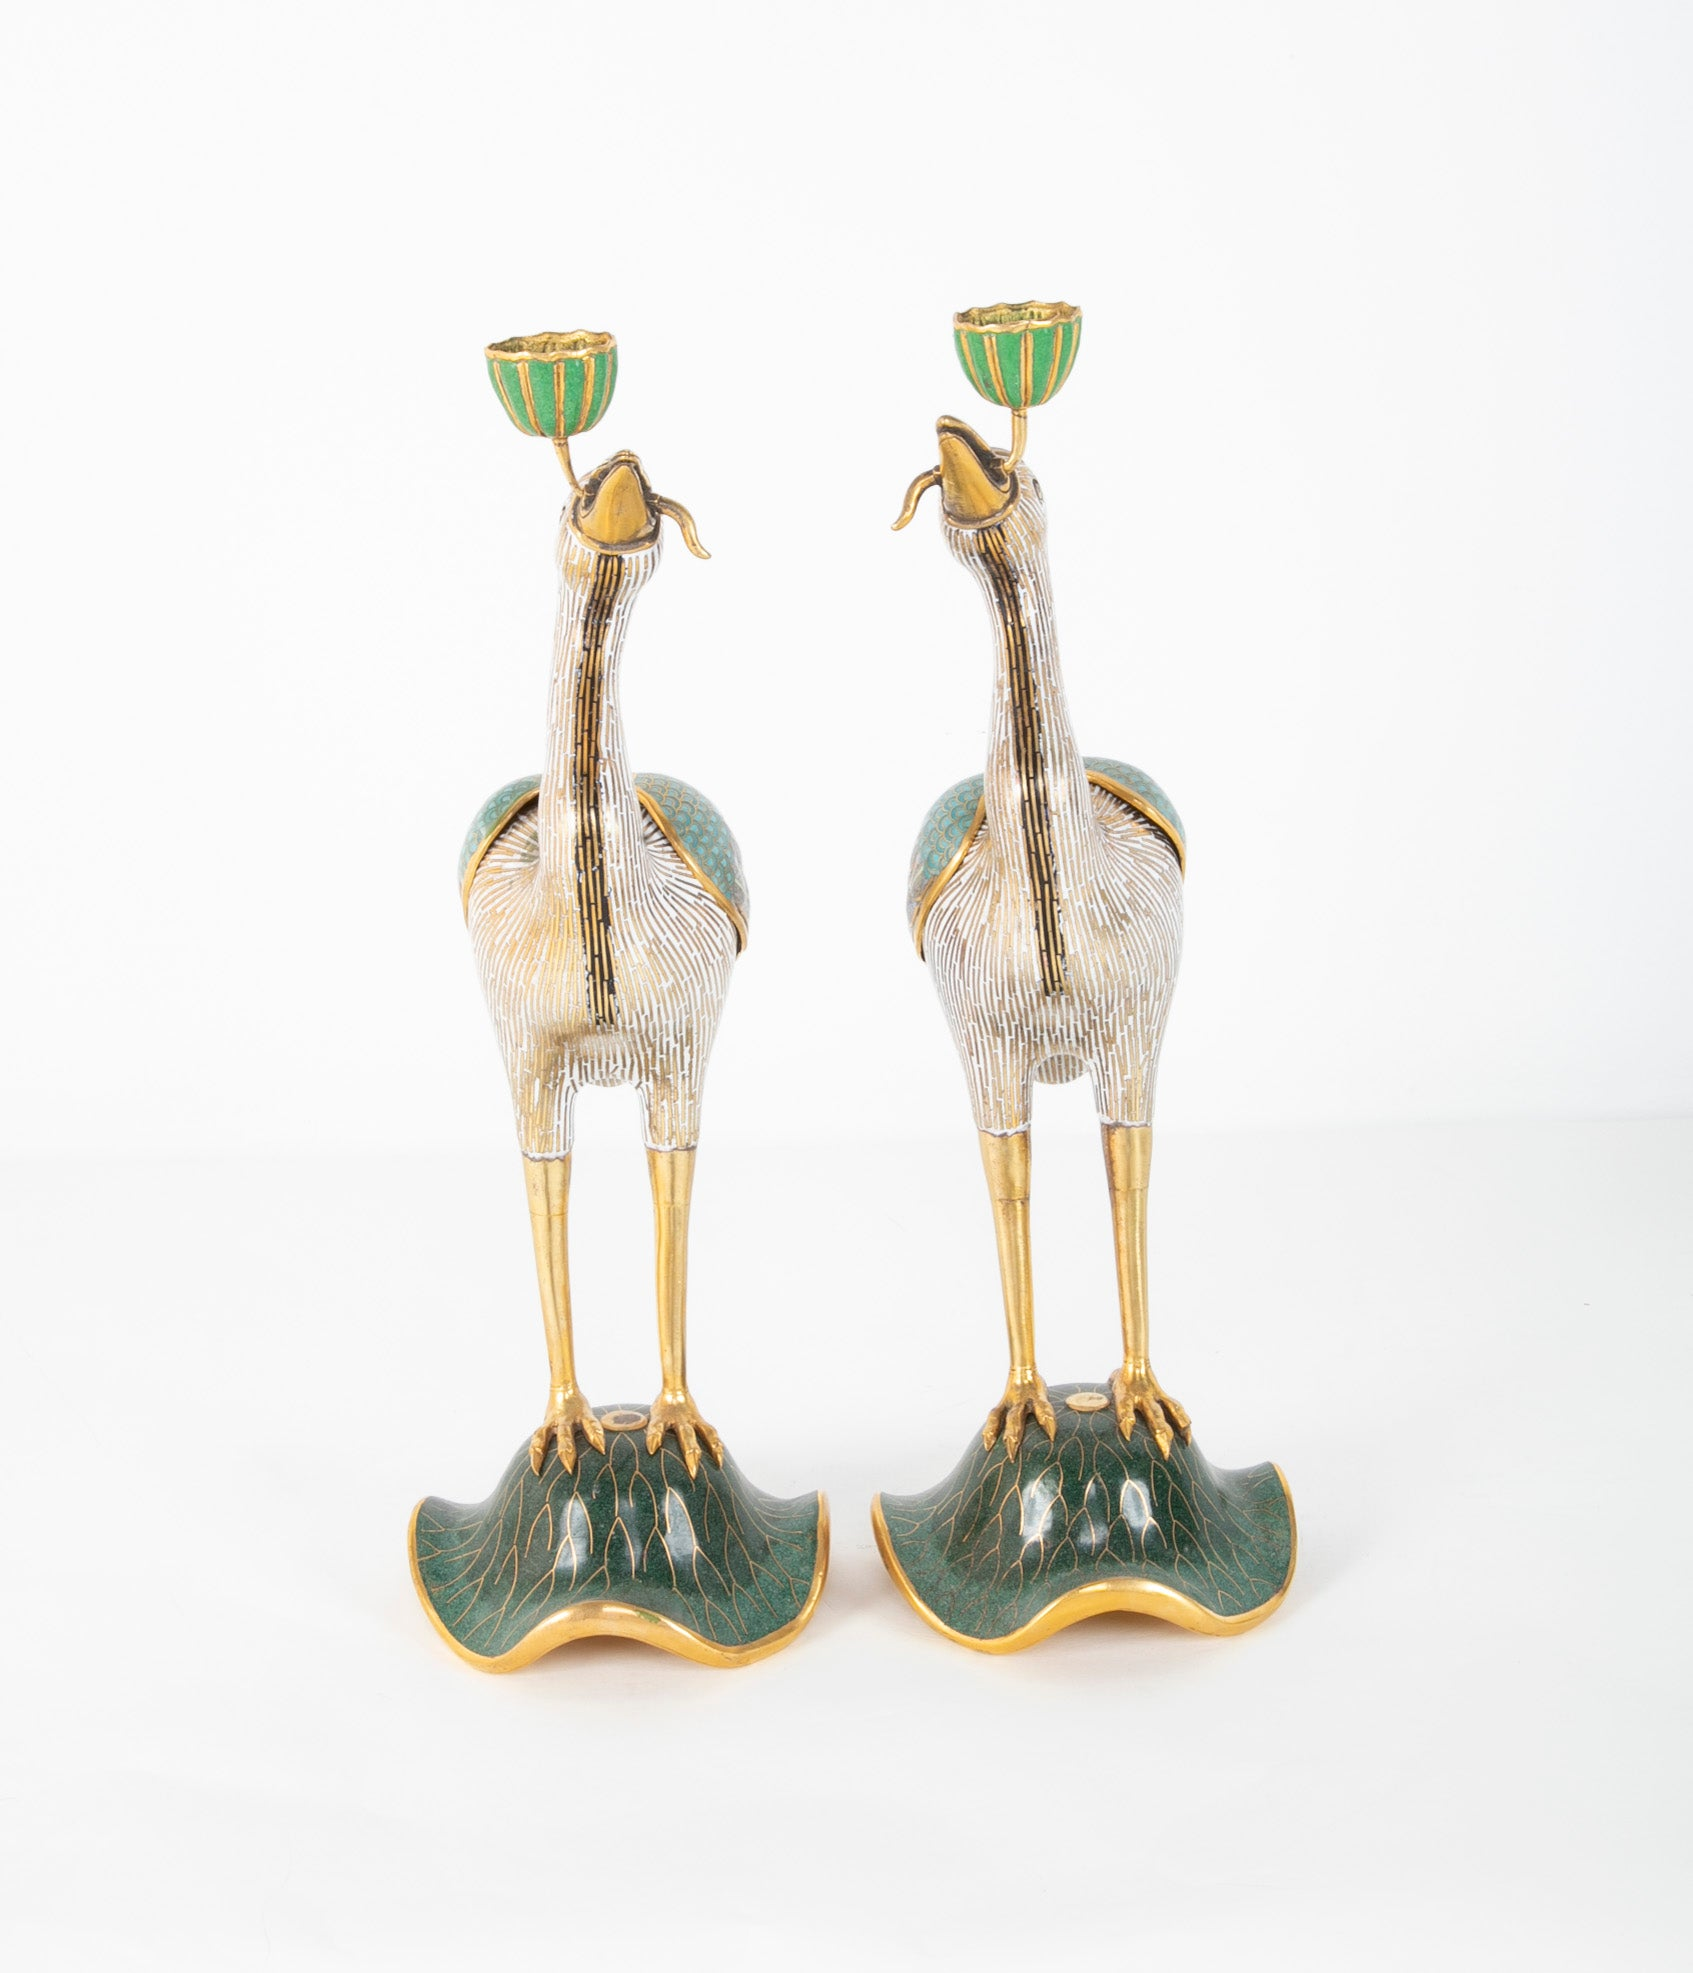 Pair of Cloisonne Incense Burners in the form of Cranes